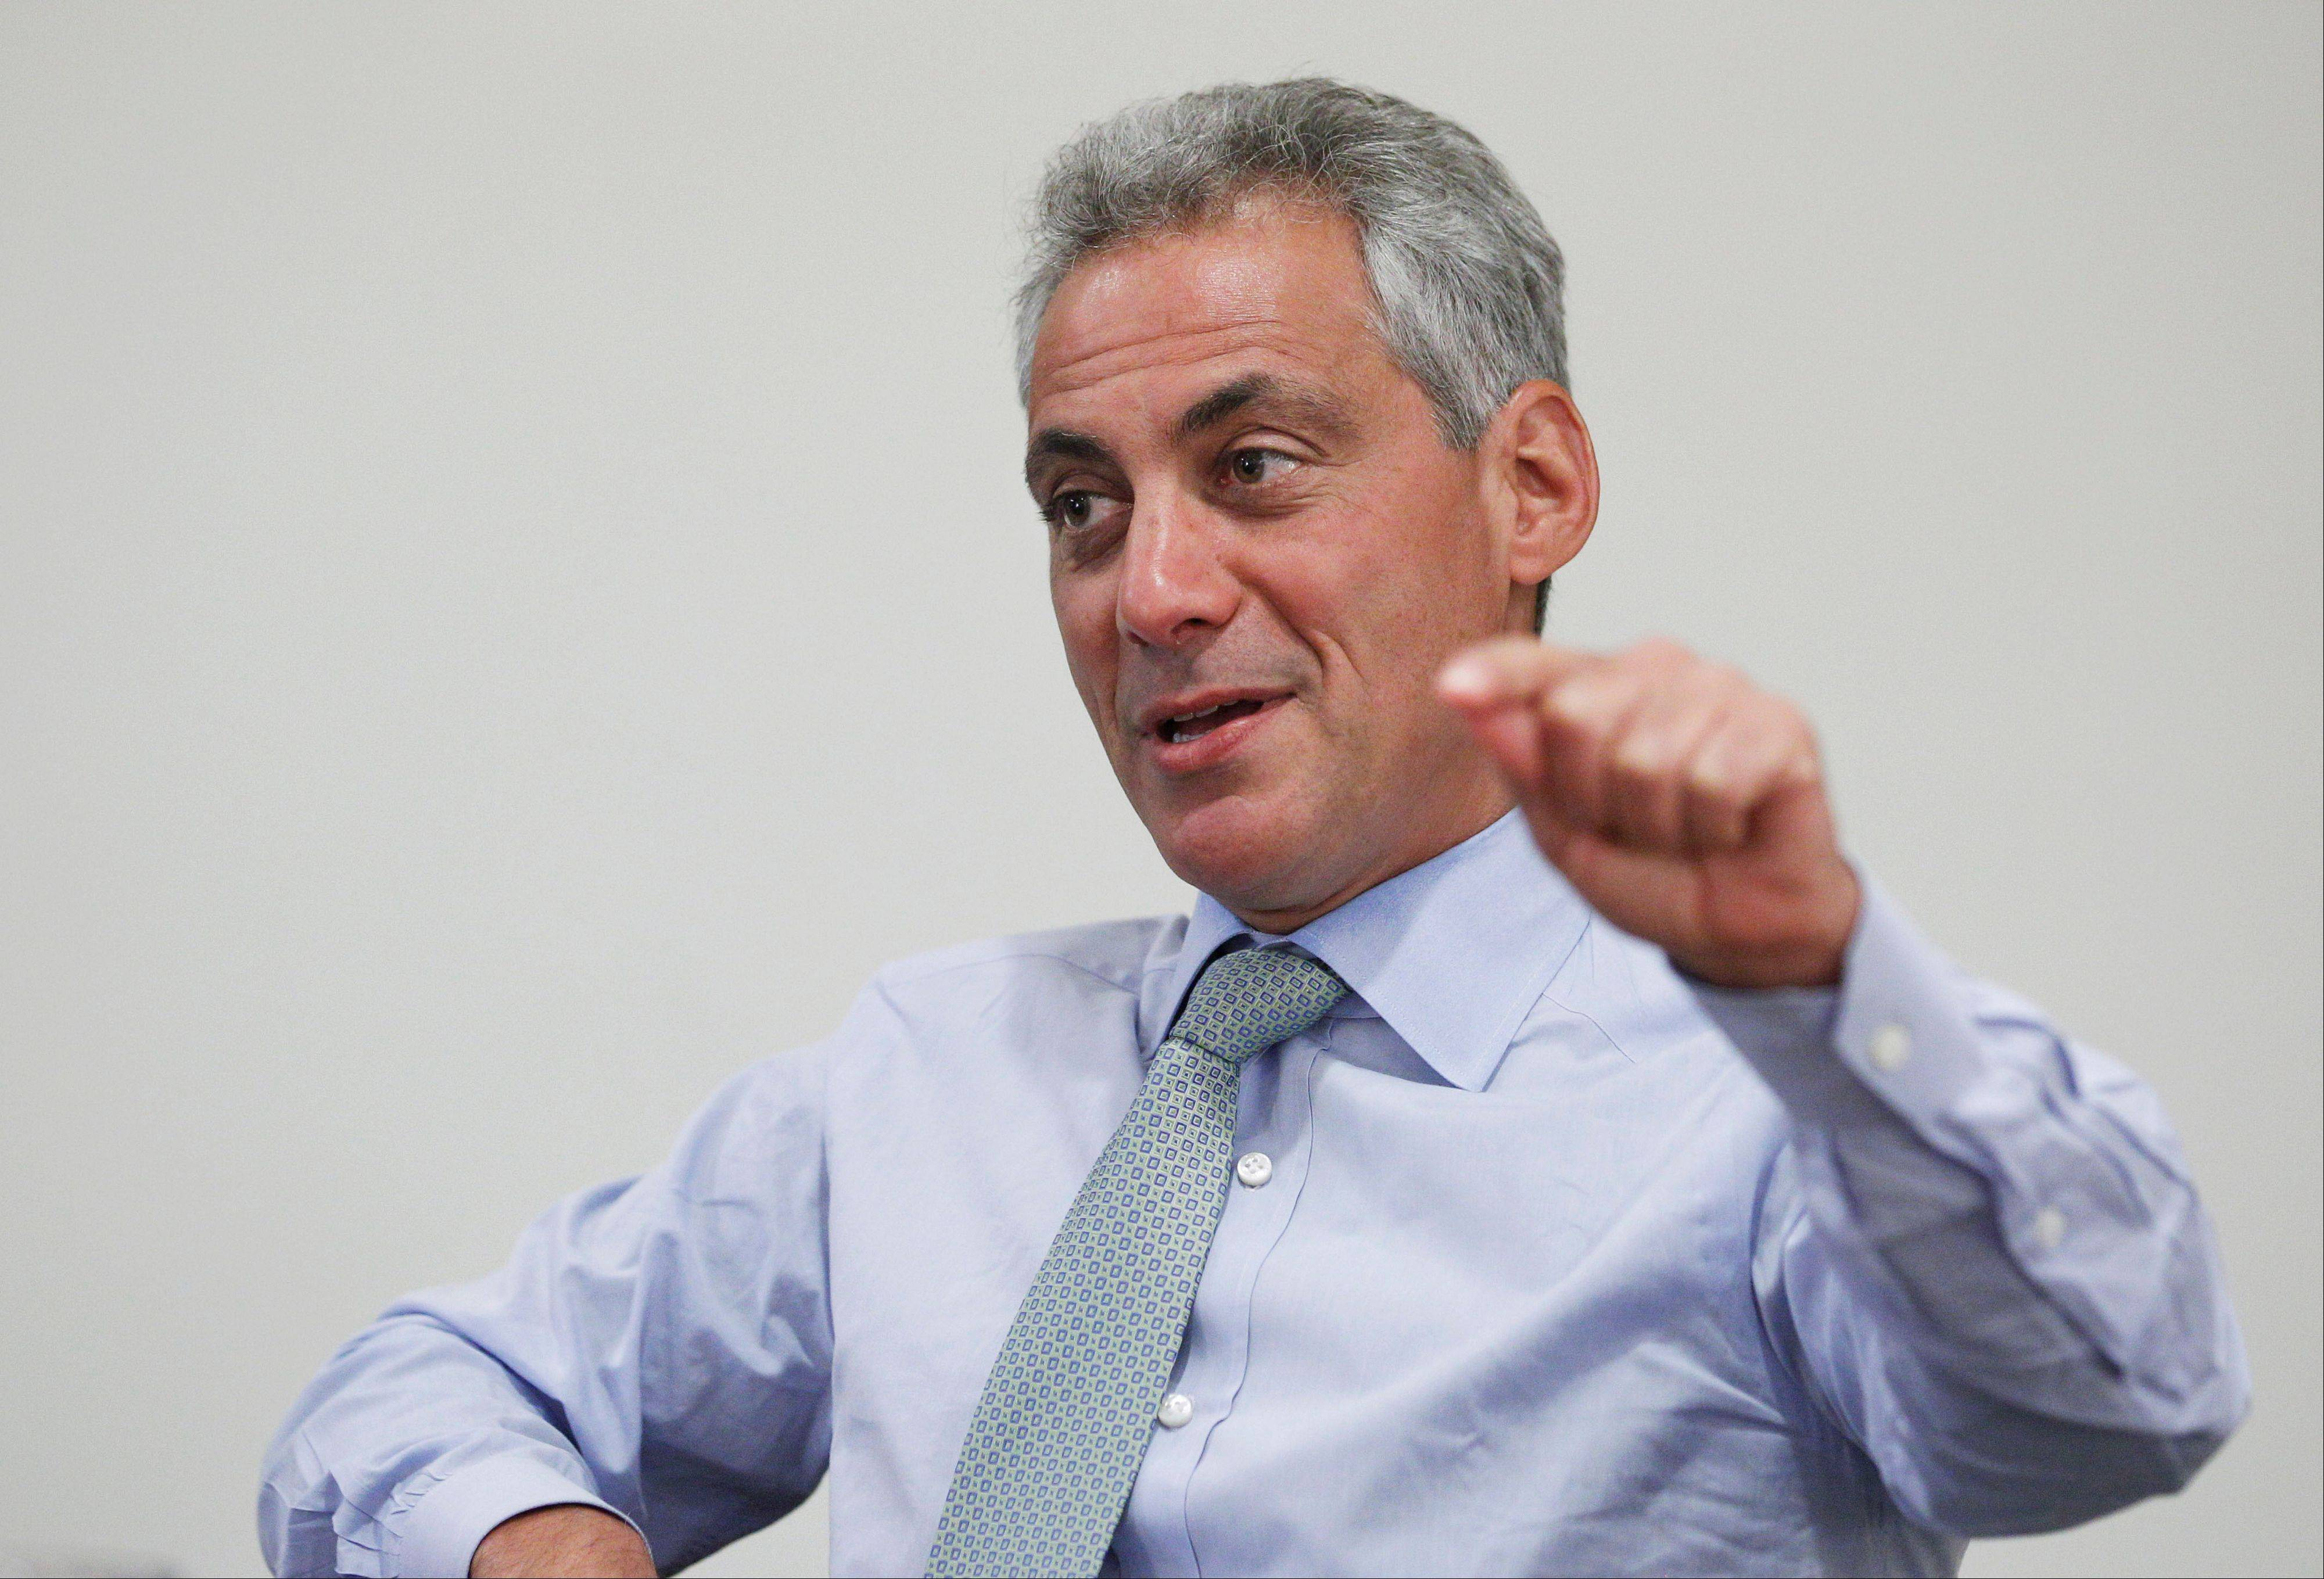 Chicago Mayor Rahm Emanuel is offering cash incentives to schools and for teachers who agree to work outside of the contract by voluntarily lengthening their day by January 2012.